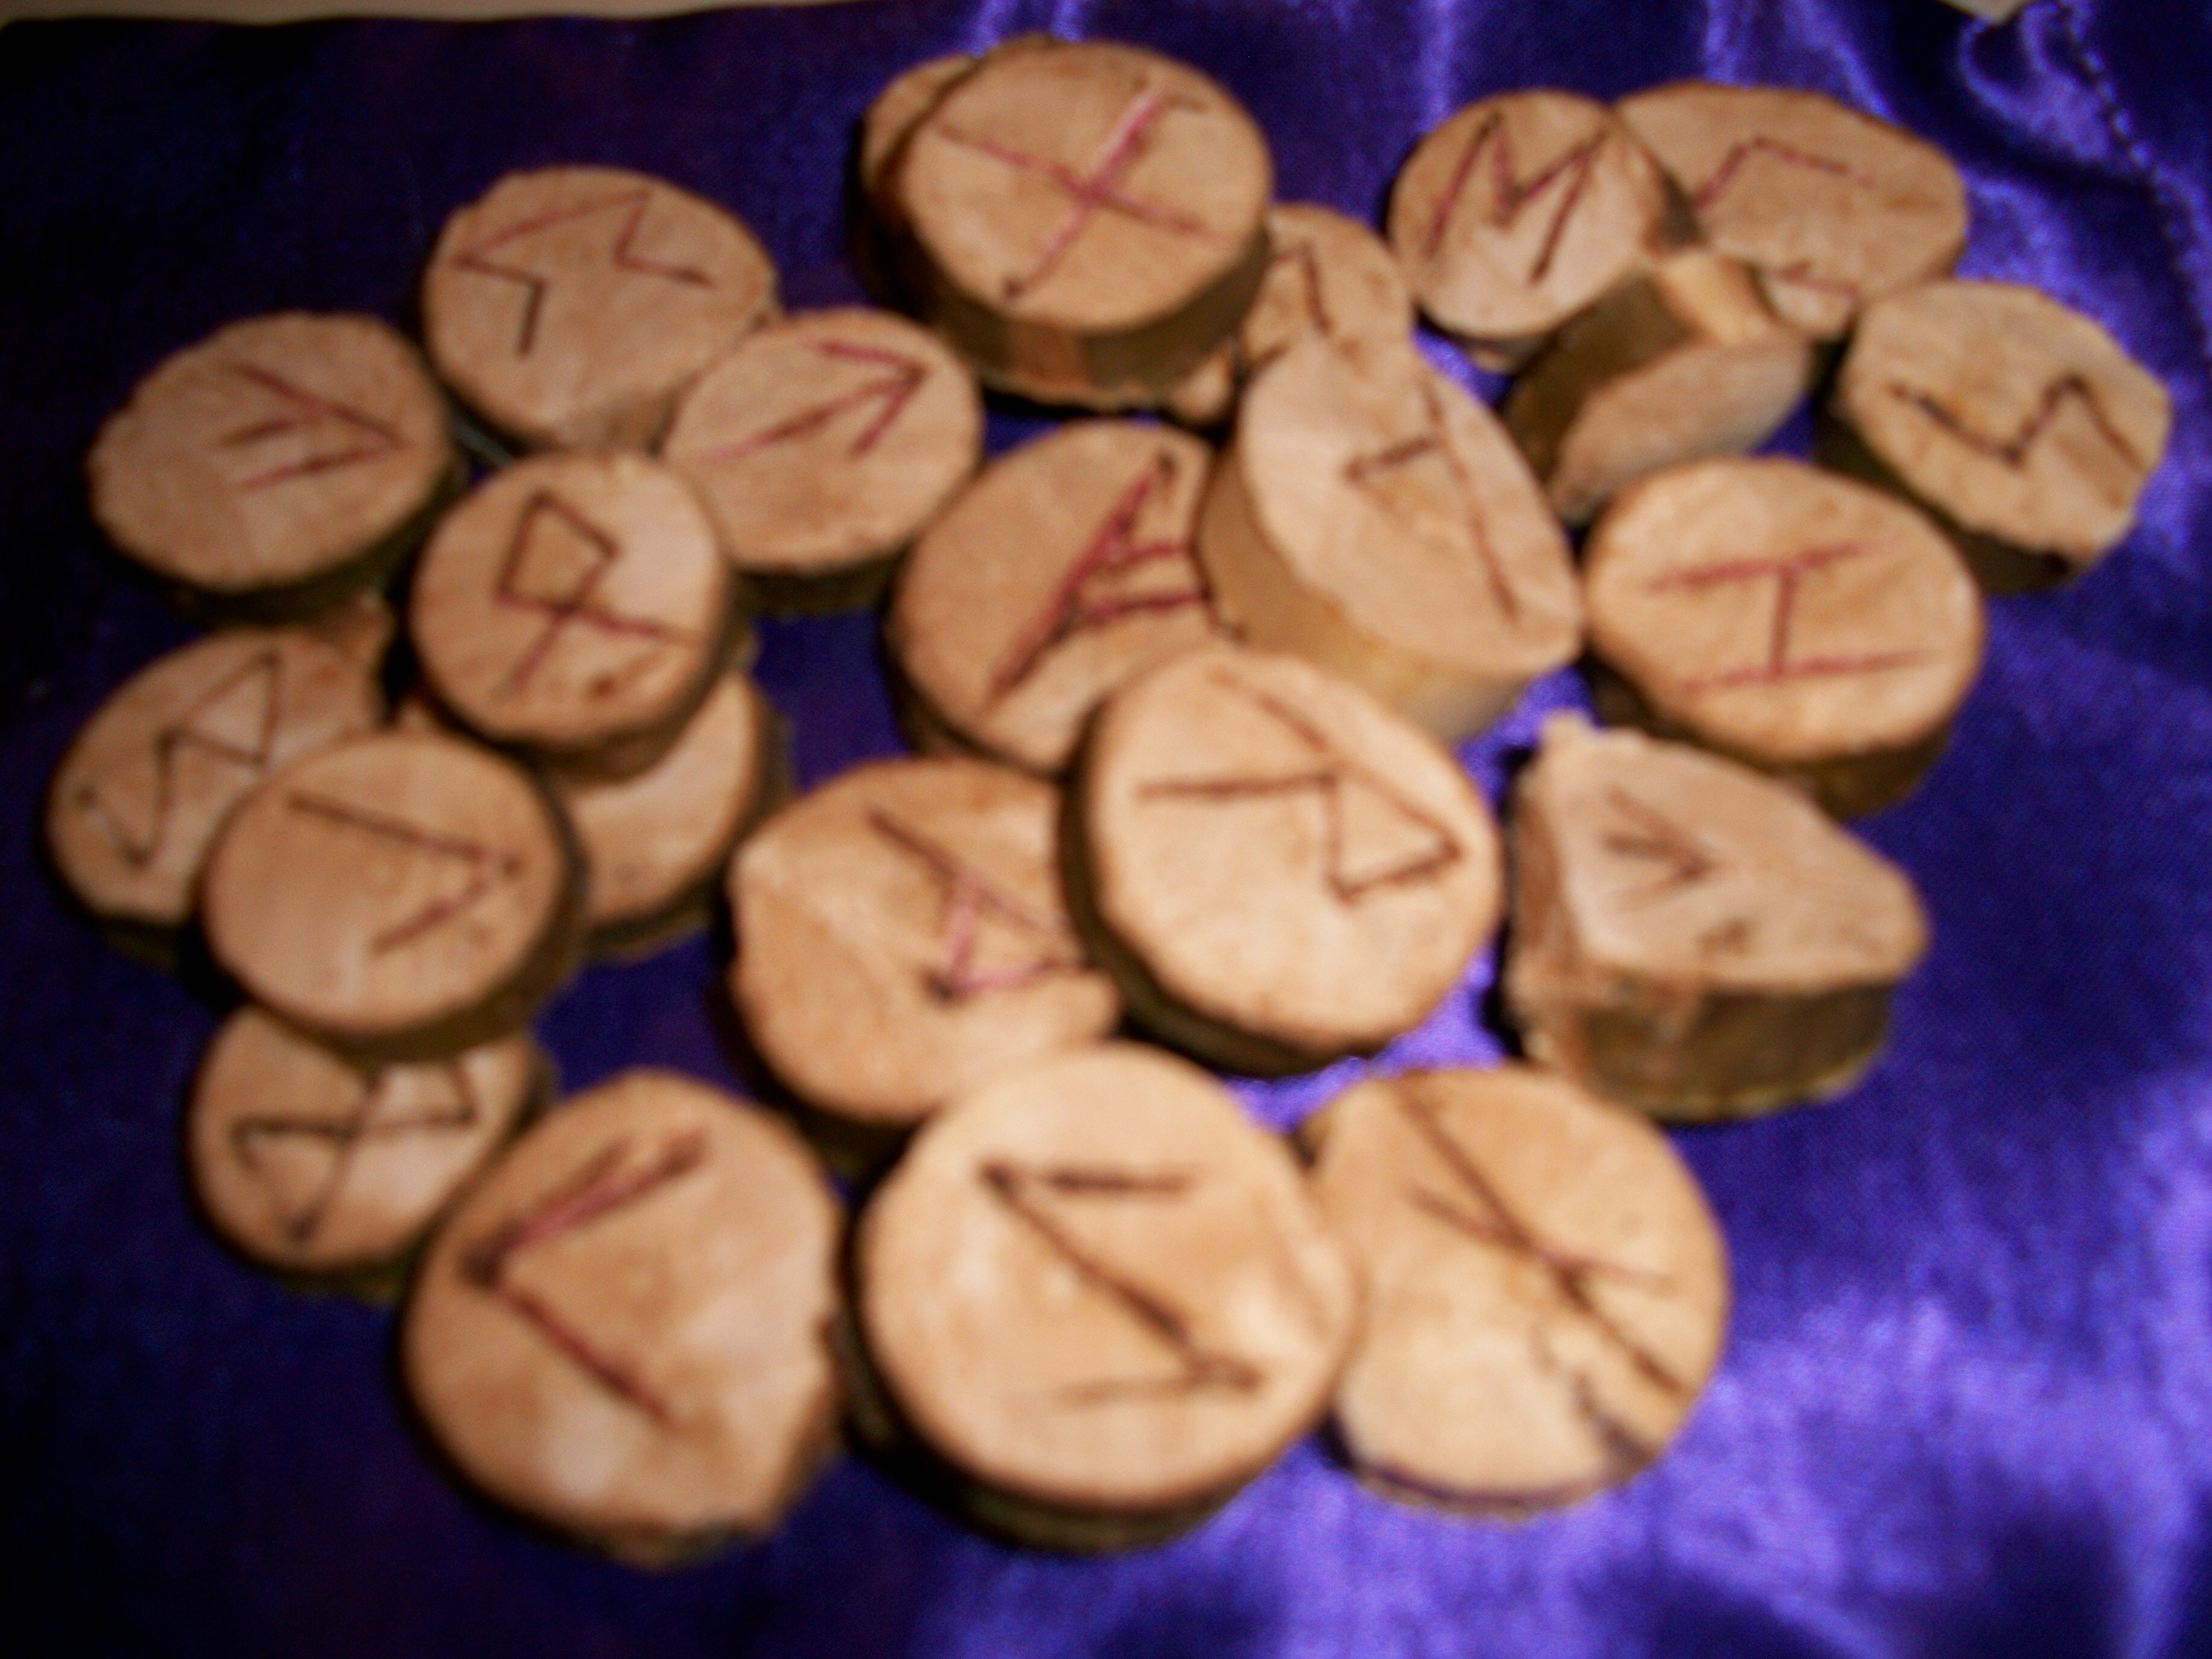 Clairvoyant Rune Reading